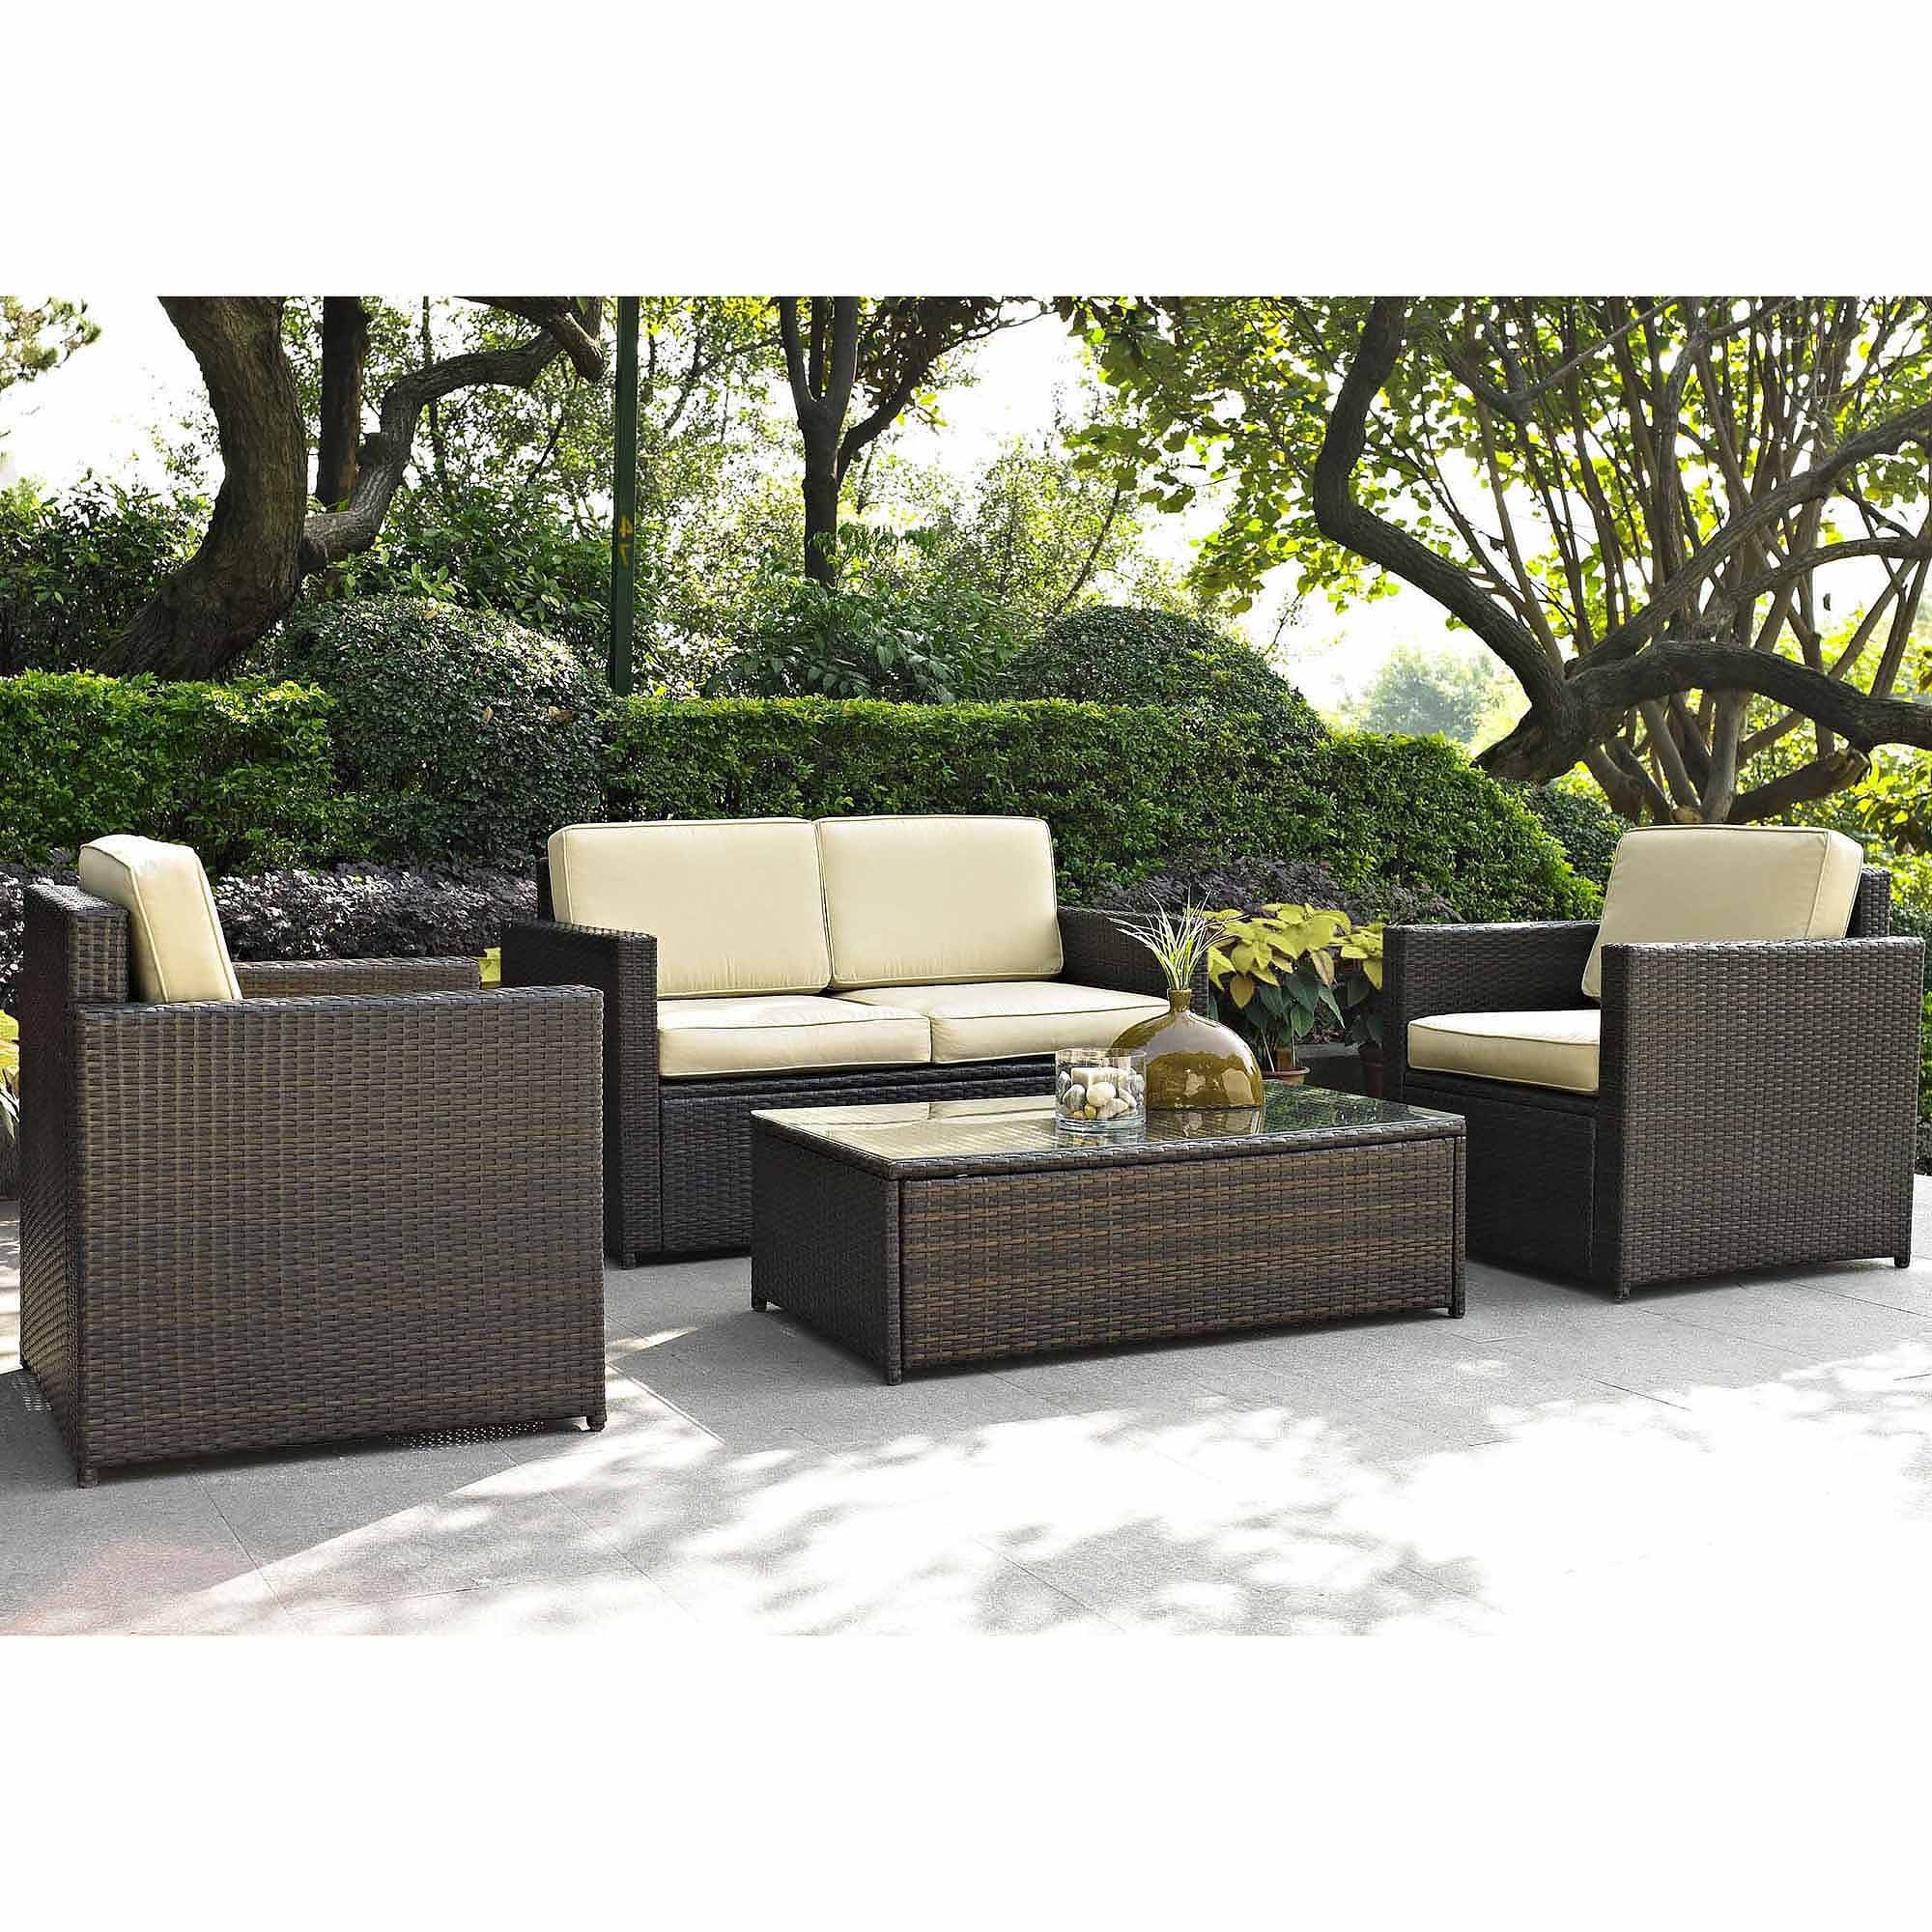 Costway Outdoor Patio 5Pc Furniture Sectional Pe Wicker Rattan Throughout Most Recent Outdoor Sofa Chairs (View 5 of 20)